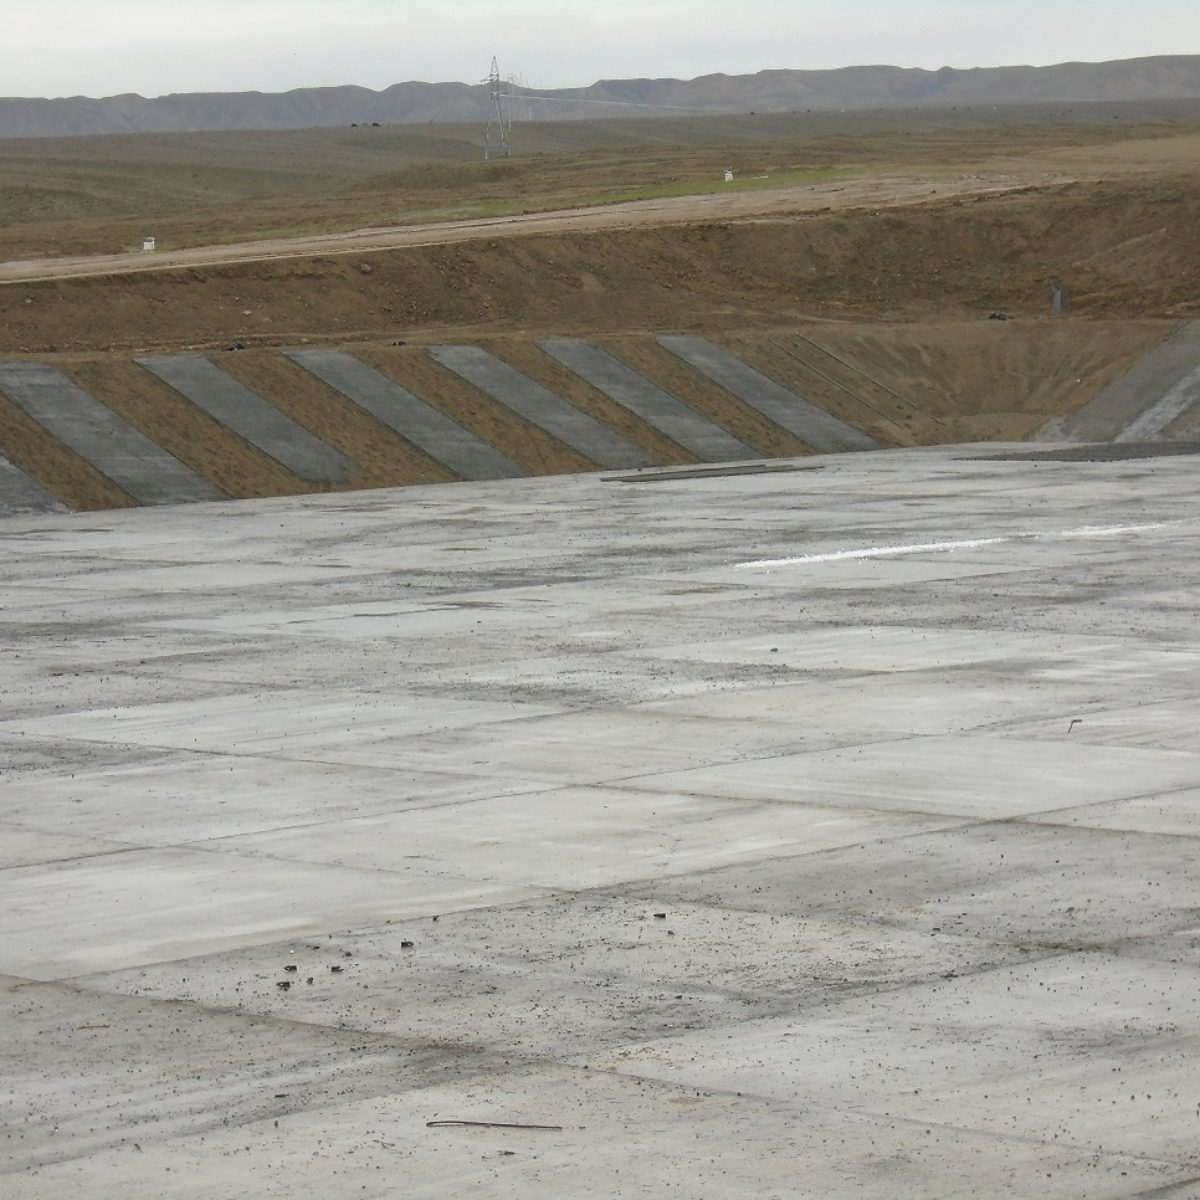 Irrigation system construction in Padarchol